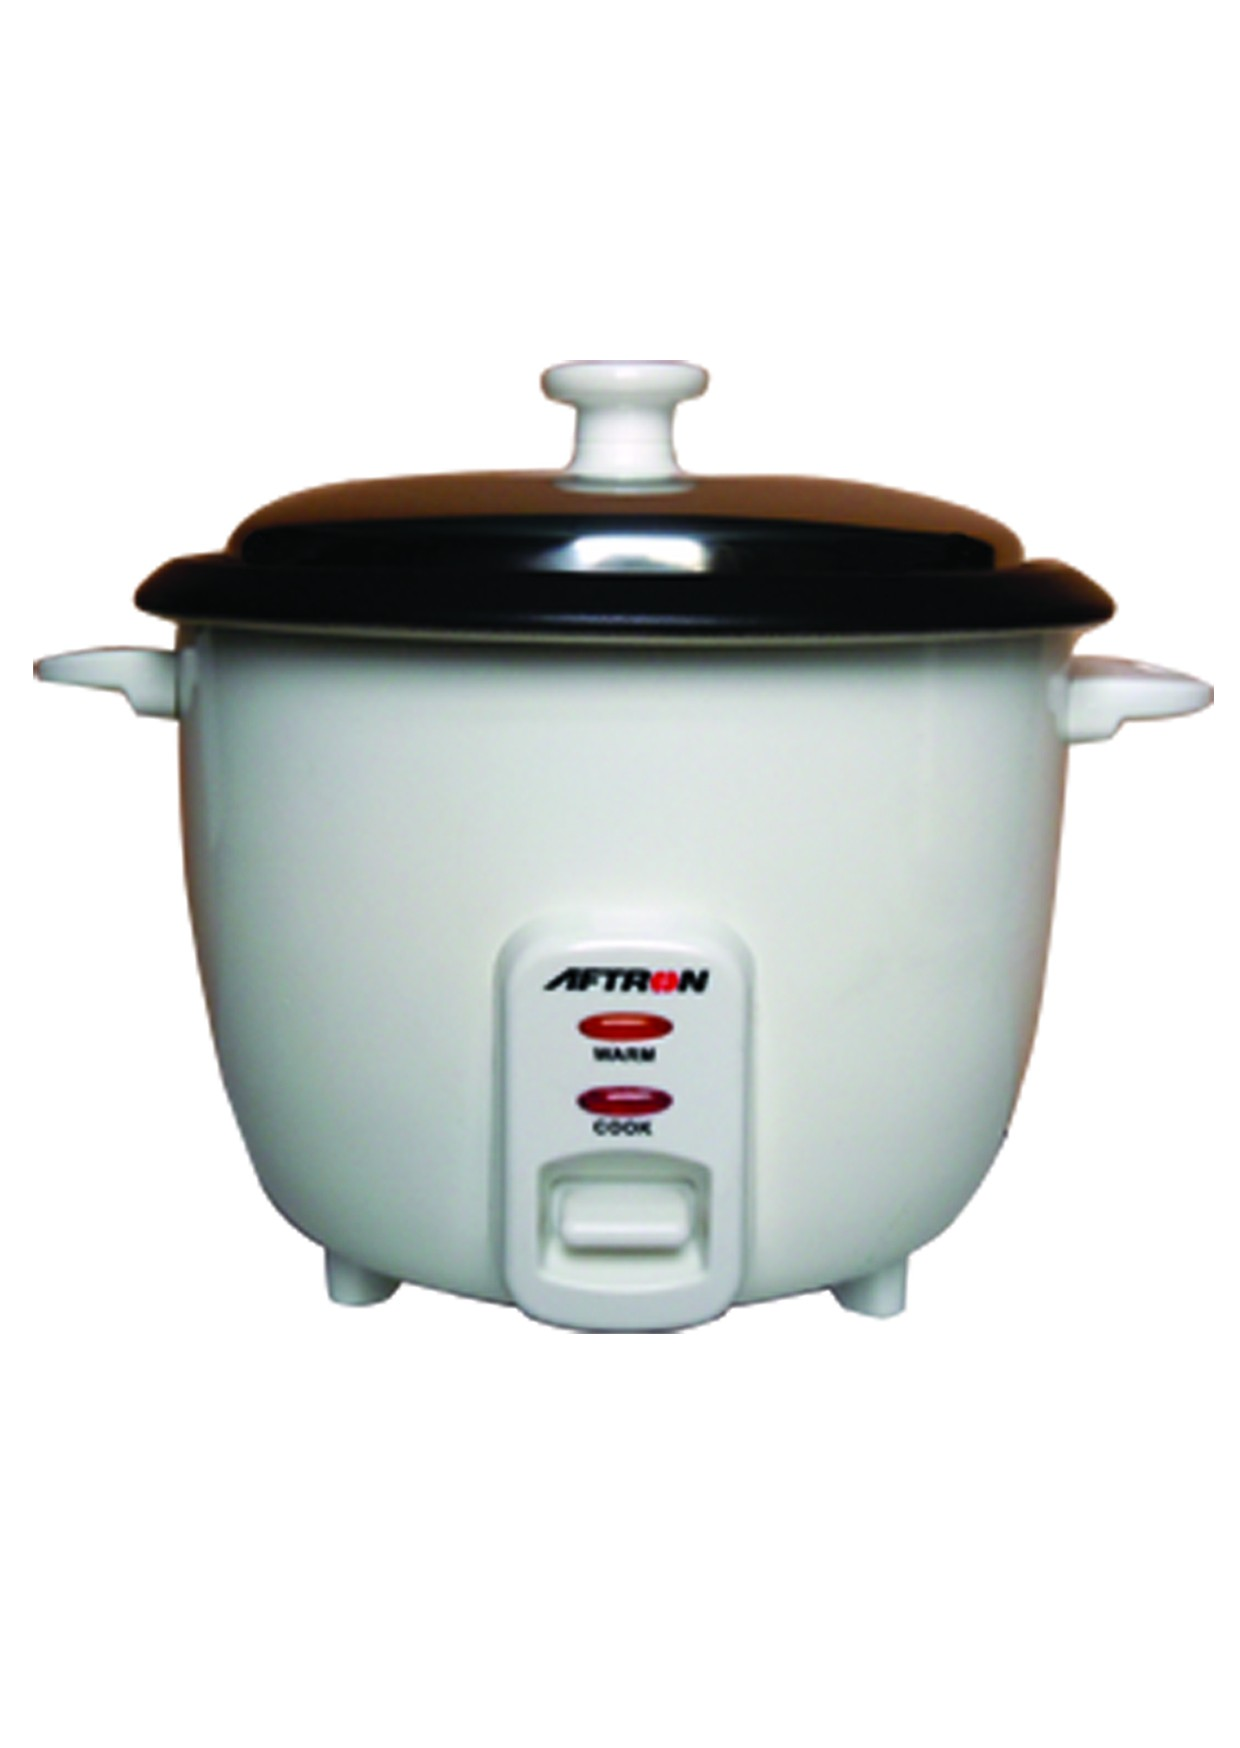 Aftron Rice Cooker 1.0 Ltr With Vegetable Steamer, AFRC1000A